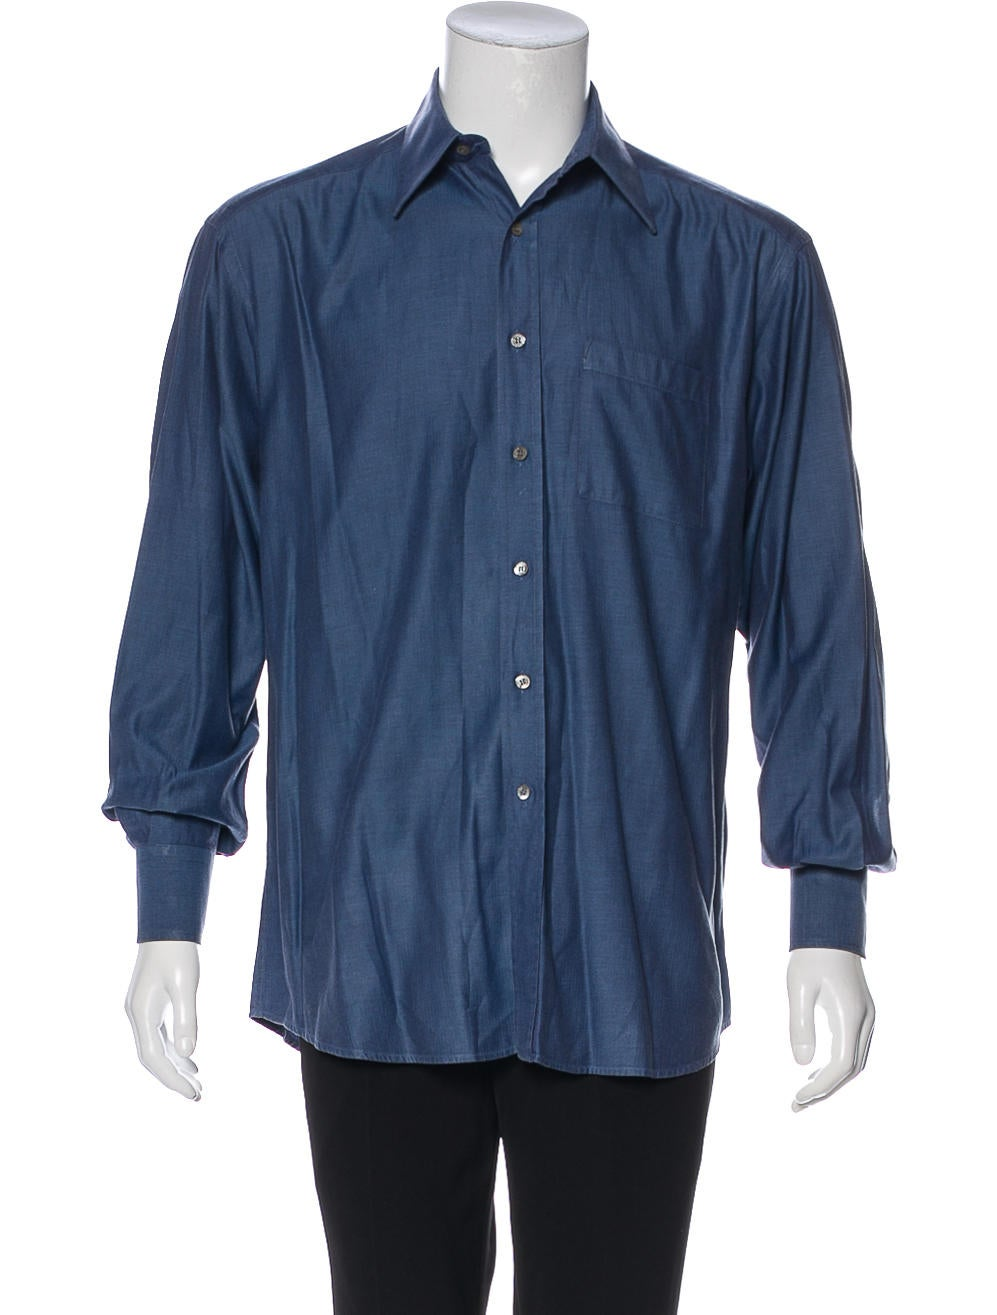 Gucci Woven Dress Shirt Clothing Guc240294 The Realreal